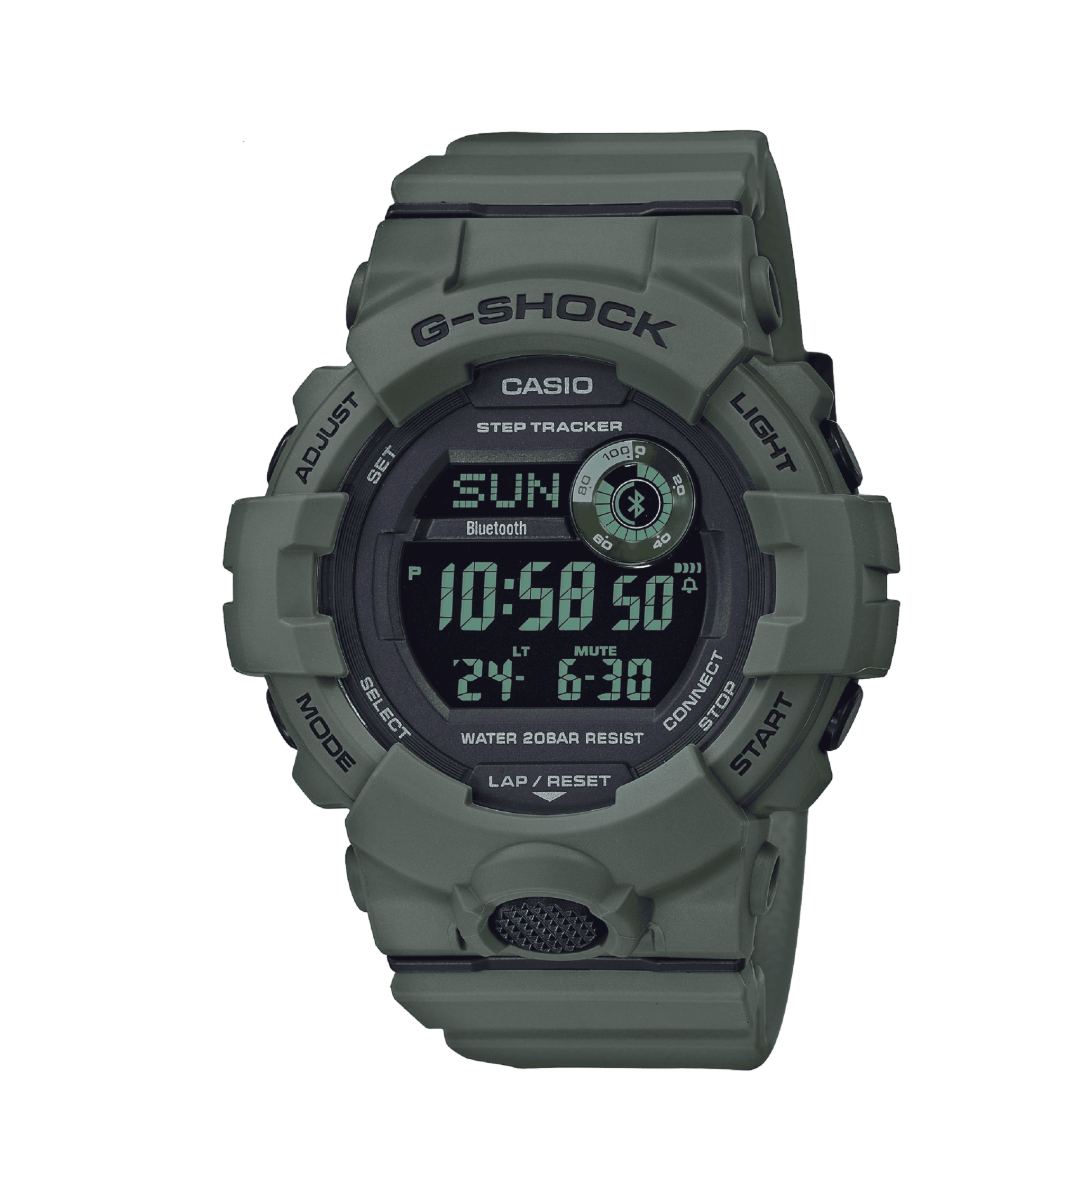 GBD800UC-3 G-Shock by Casio Green Bluetooth Connectivity Mineral Glass, Step Tracker, Front View